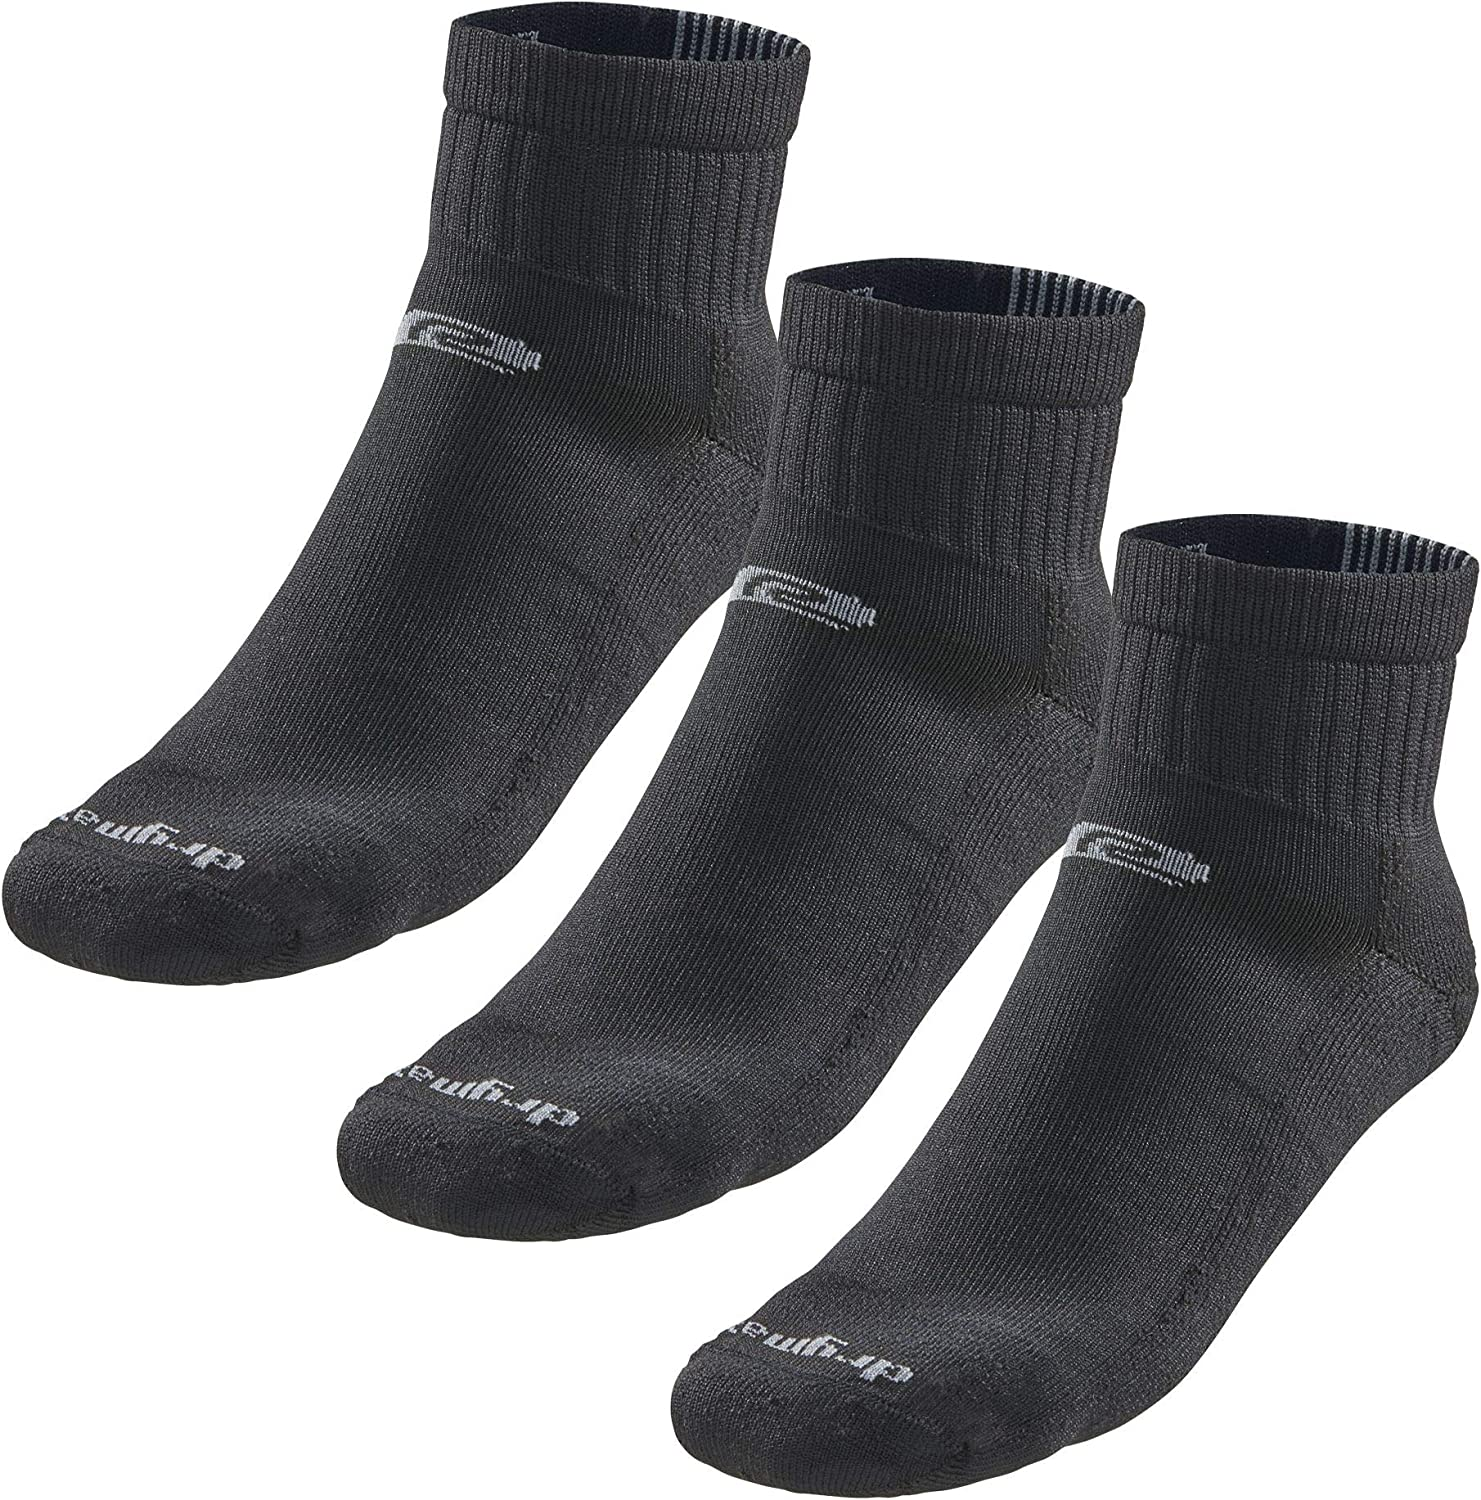 Drymax R-Gear Quarter Running Socks for Men/Women (3-Pack) | Super Breathable Keep Feet Dry, Comfy and Blister-Free